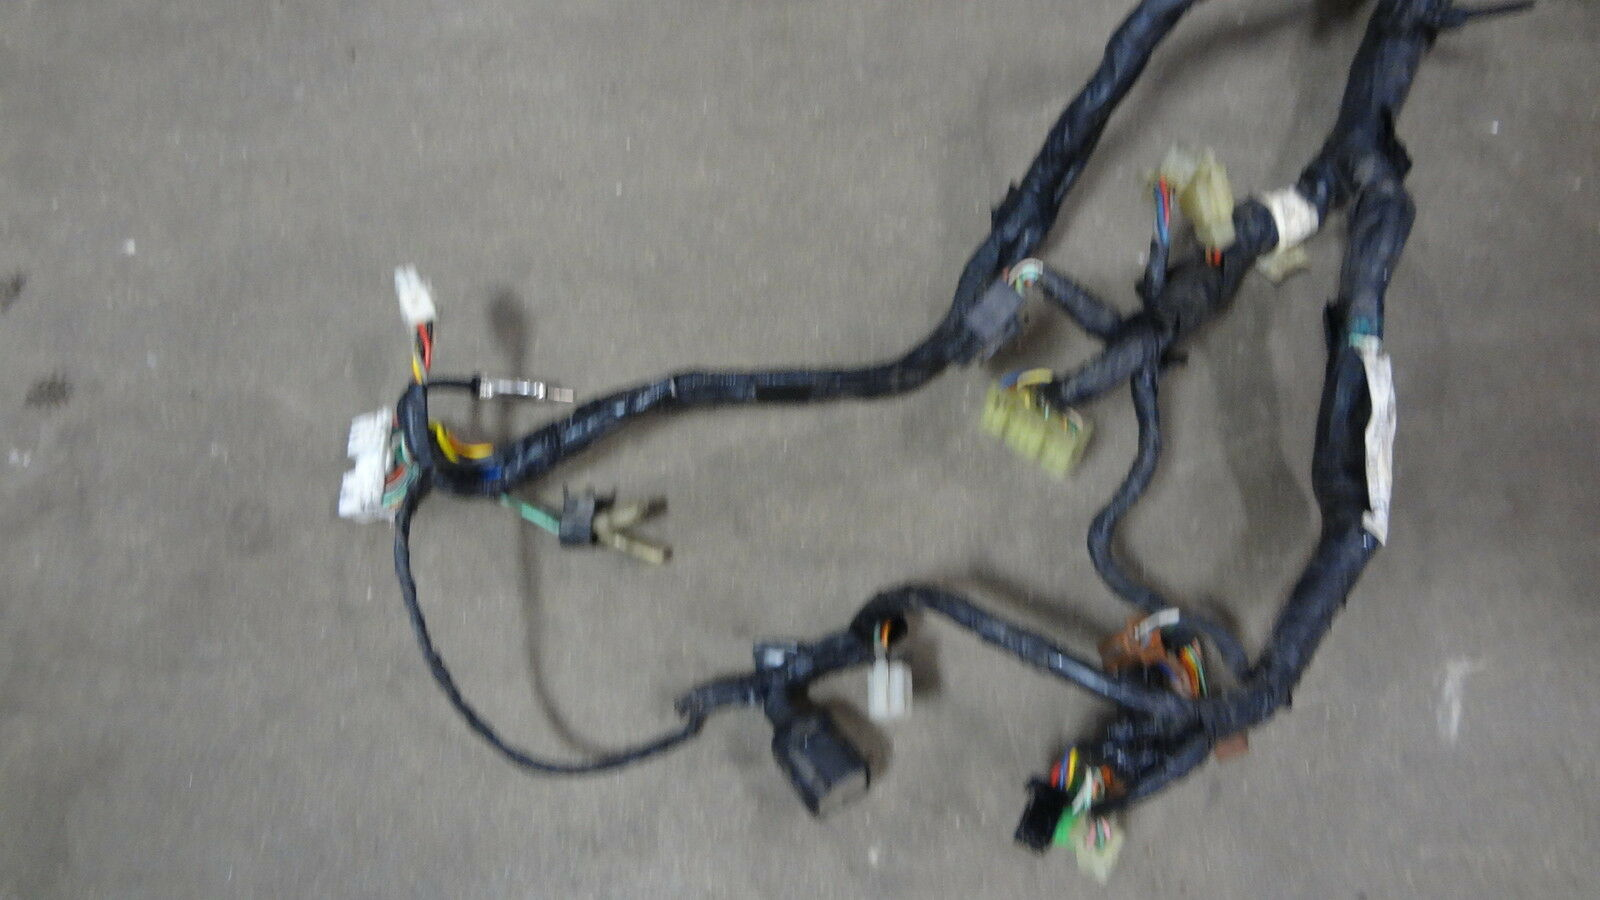 s l1600 lm wire harness inc automotive wiring harness \u2022 indy500 co  at fashall.co